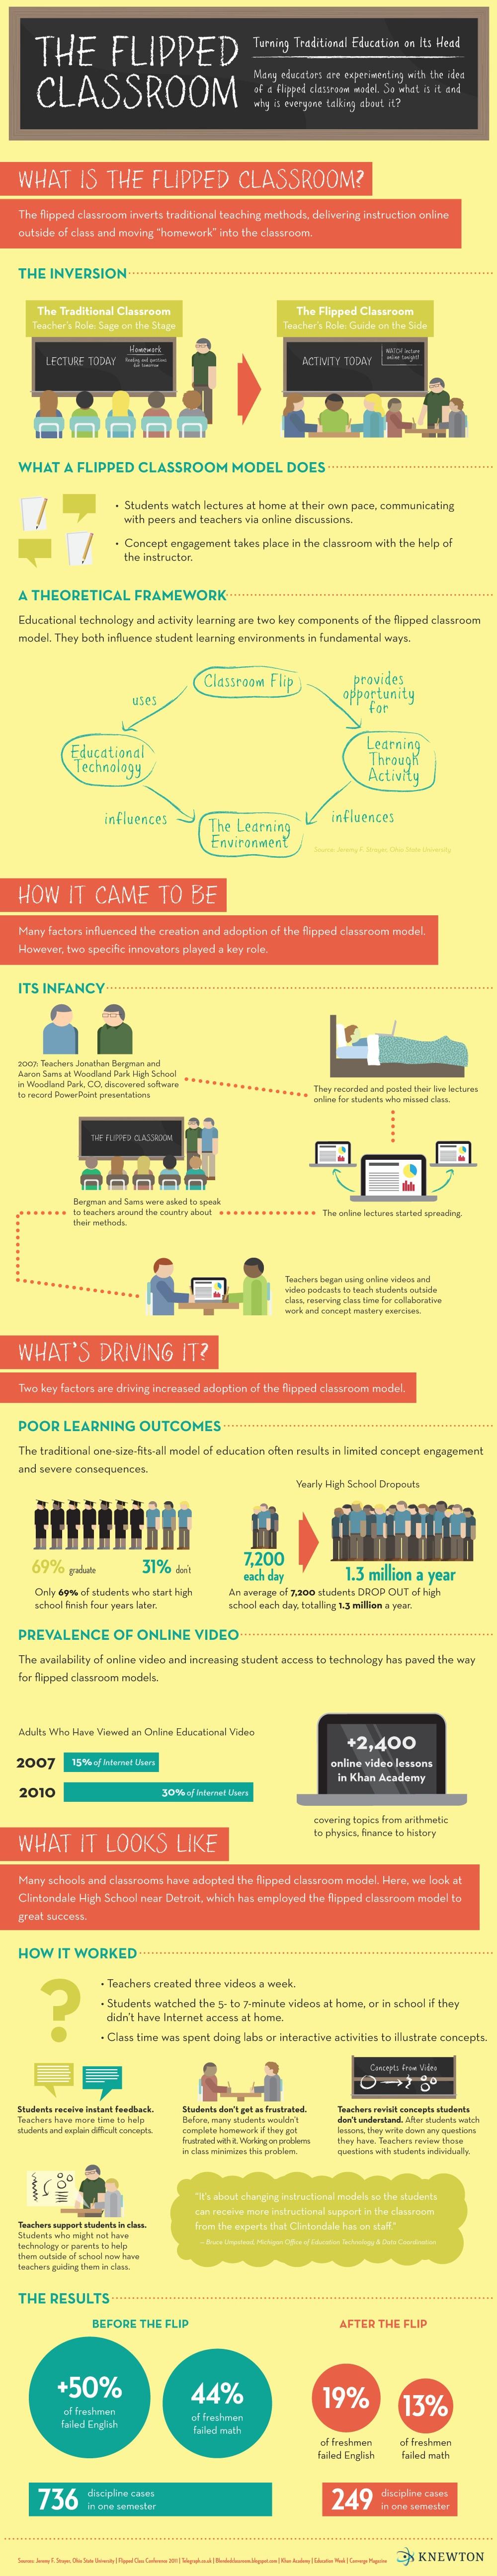 The-Flipped-Classroom-Infographic